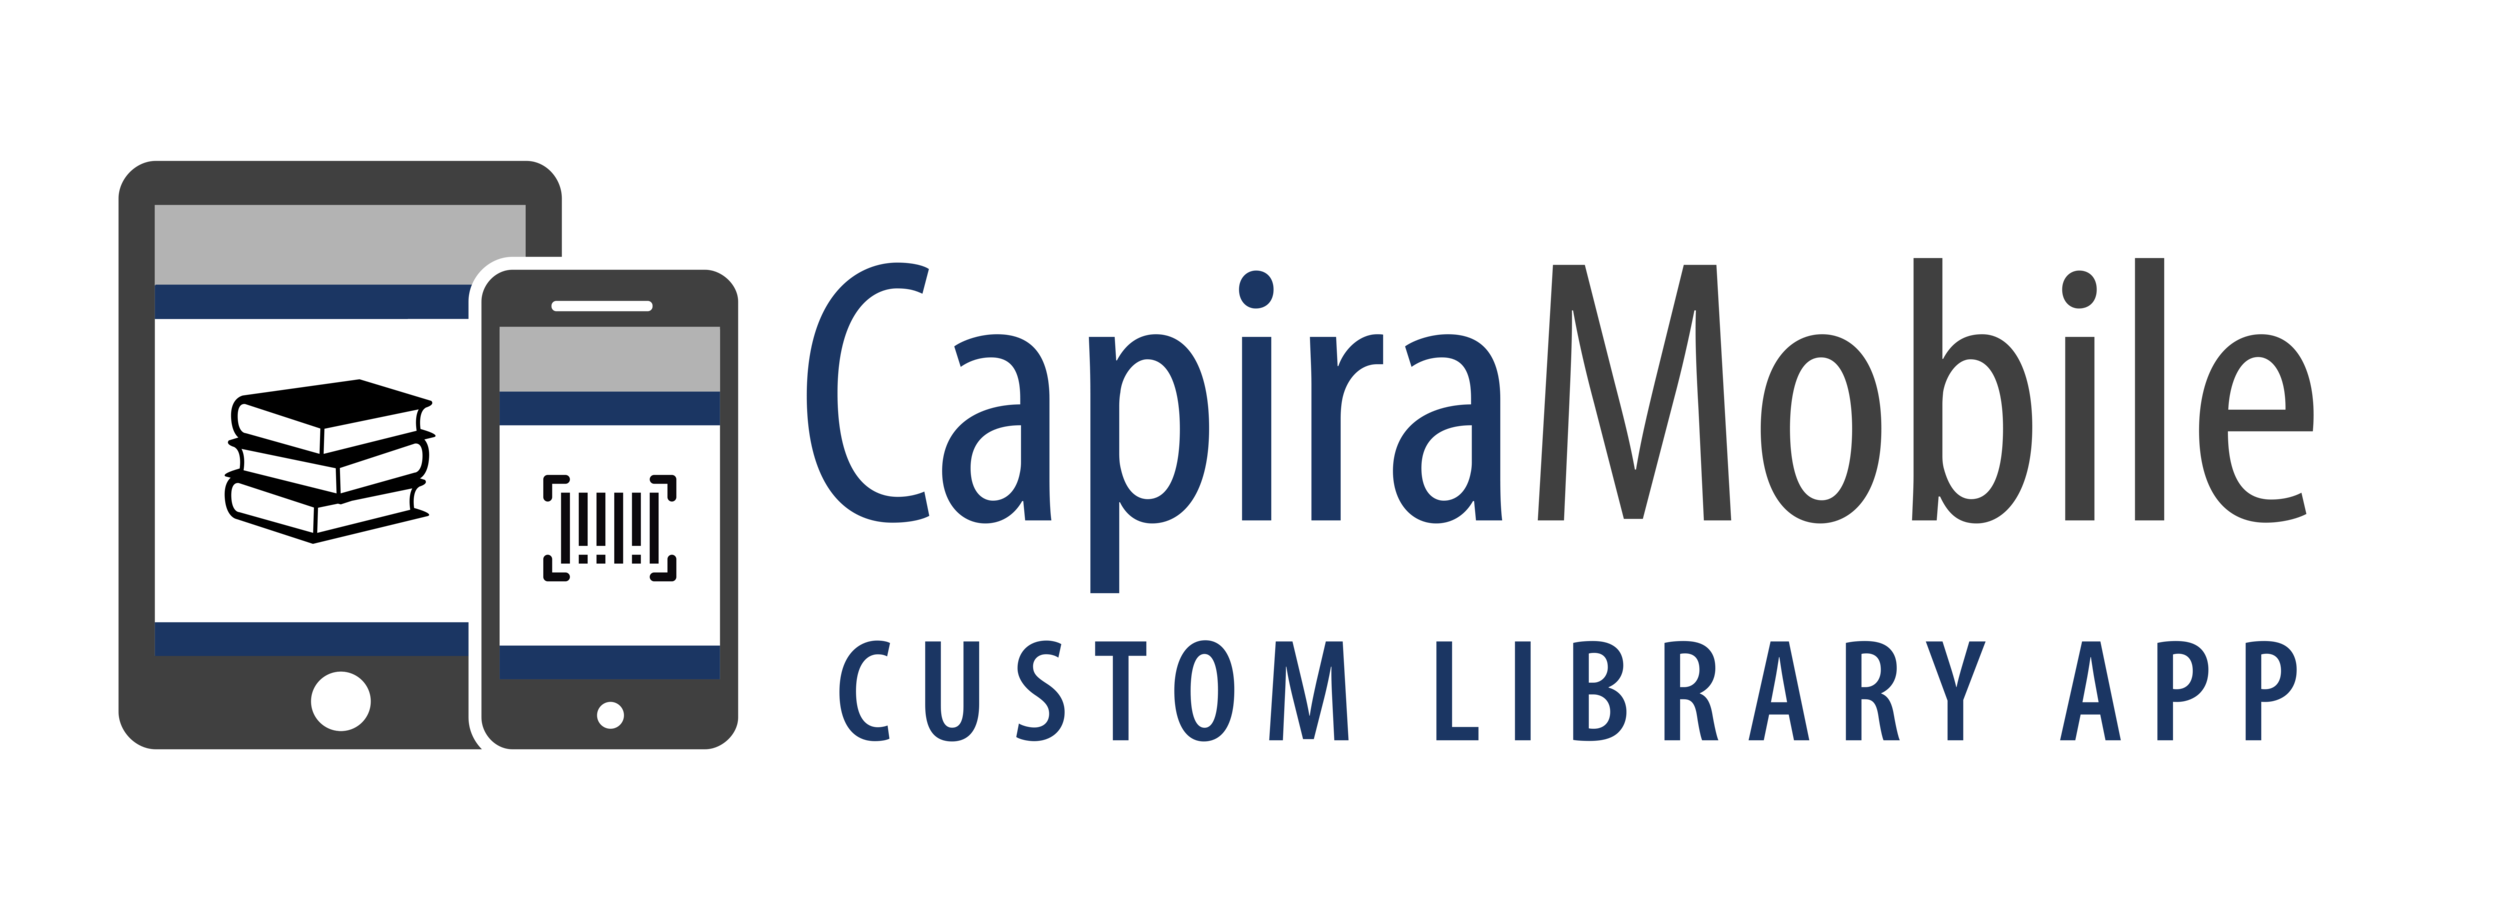 CapiraMobile_logo-CustomLibraryApp.png